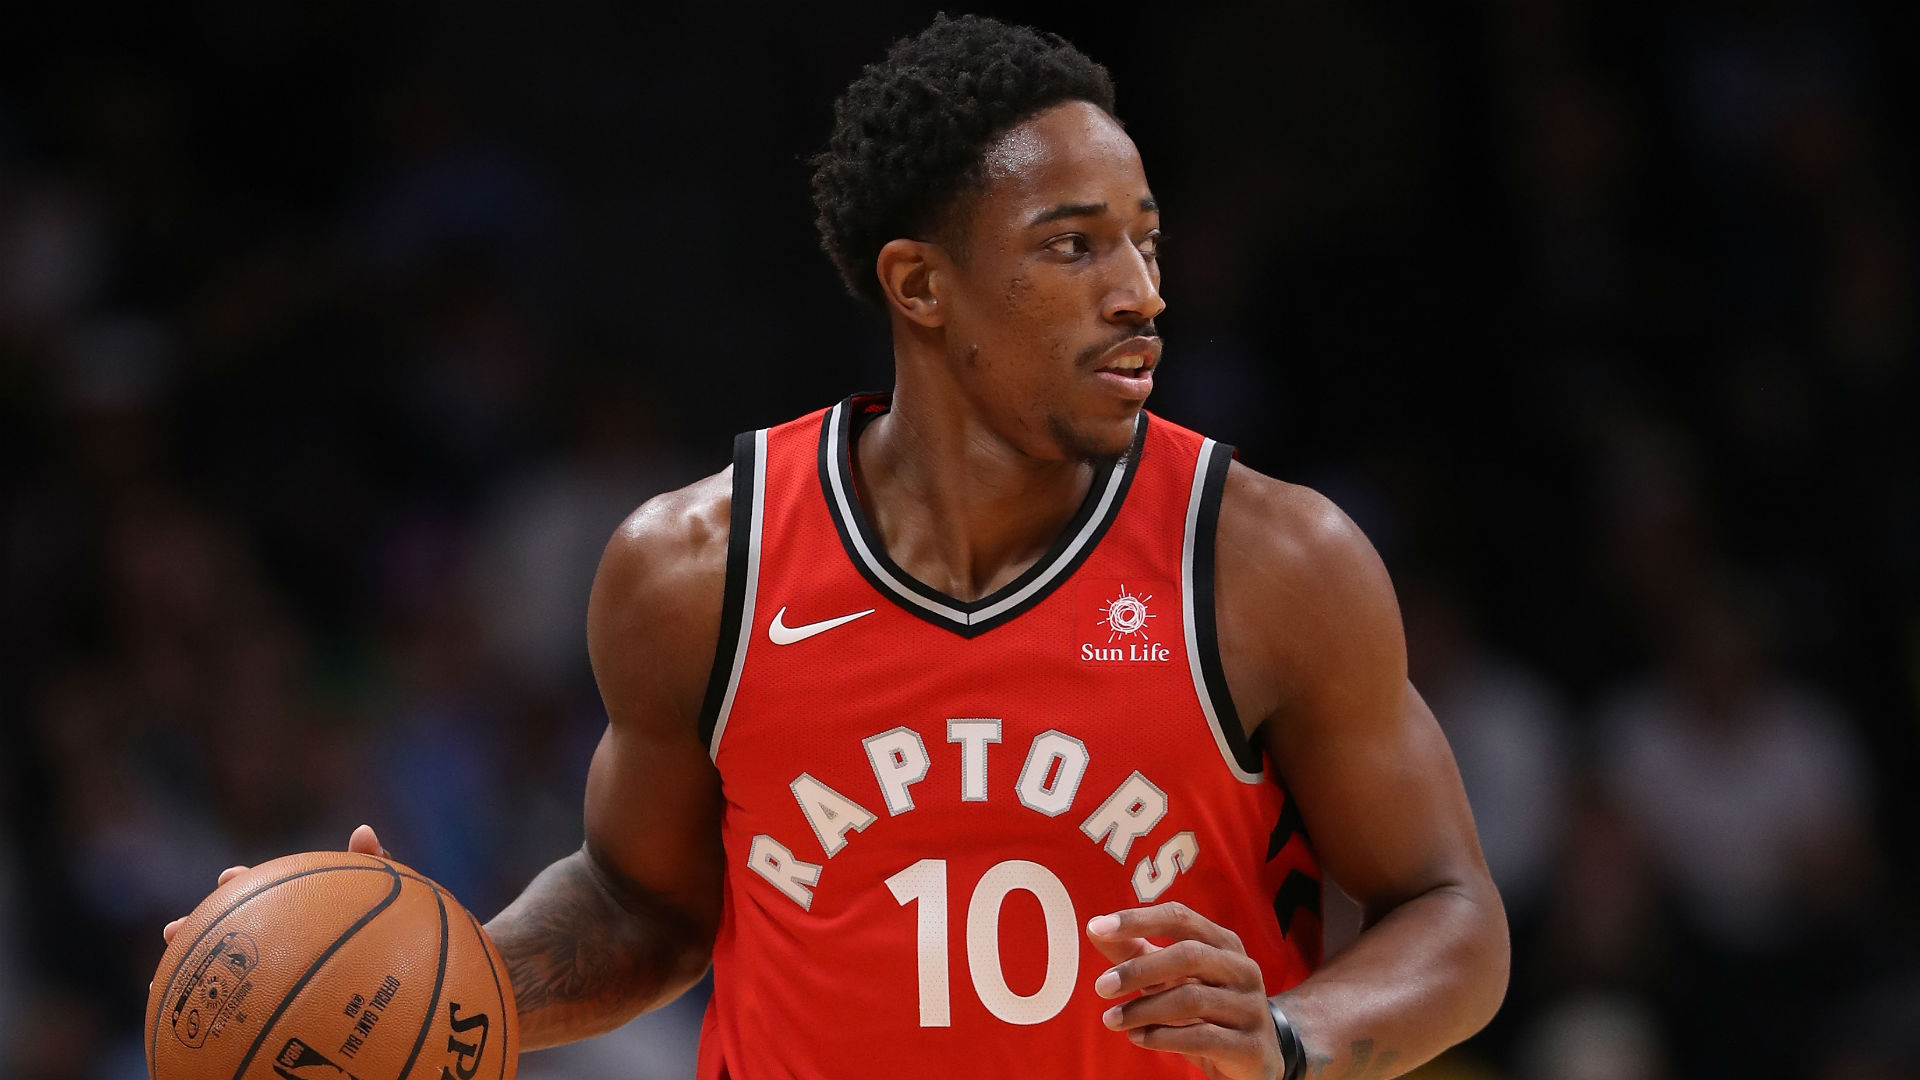 NBA Playoffs Preview: Toronto Raptors vs Washington Wizards, SWOT Analysis & Prediction